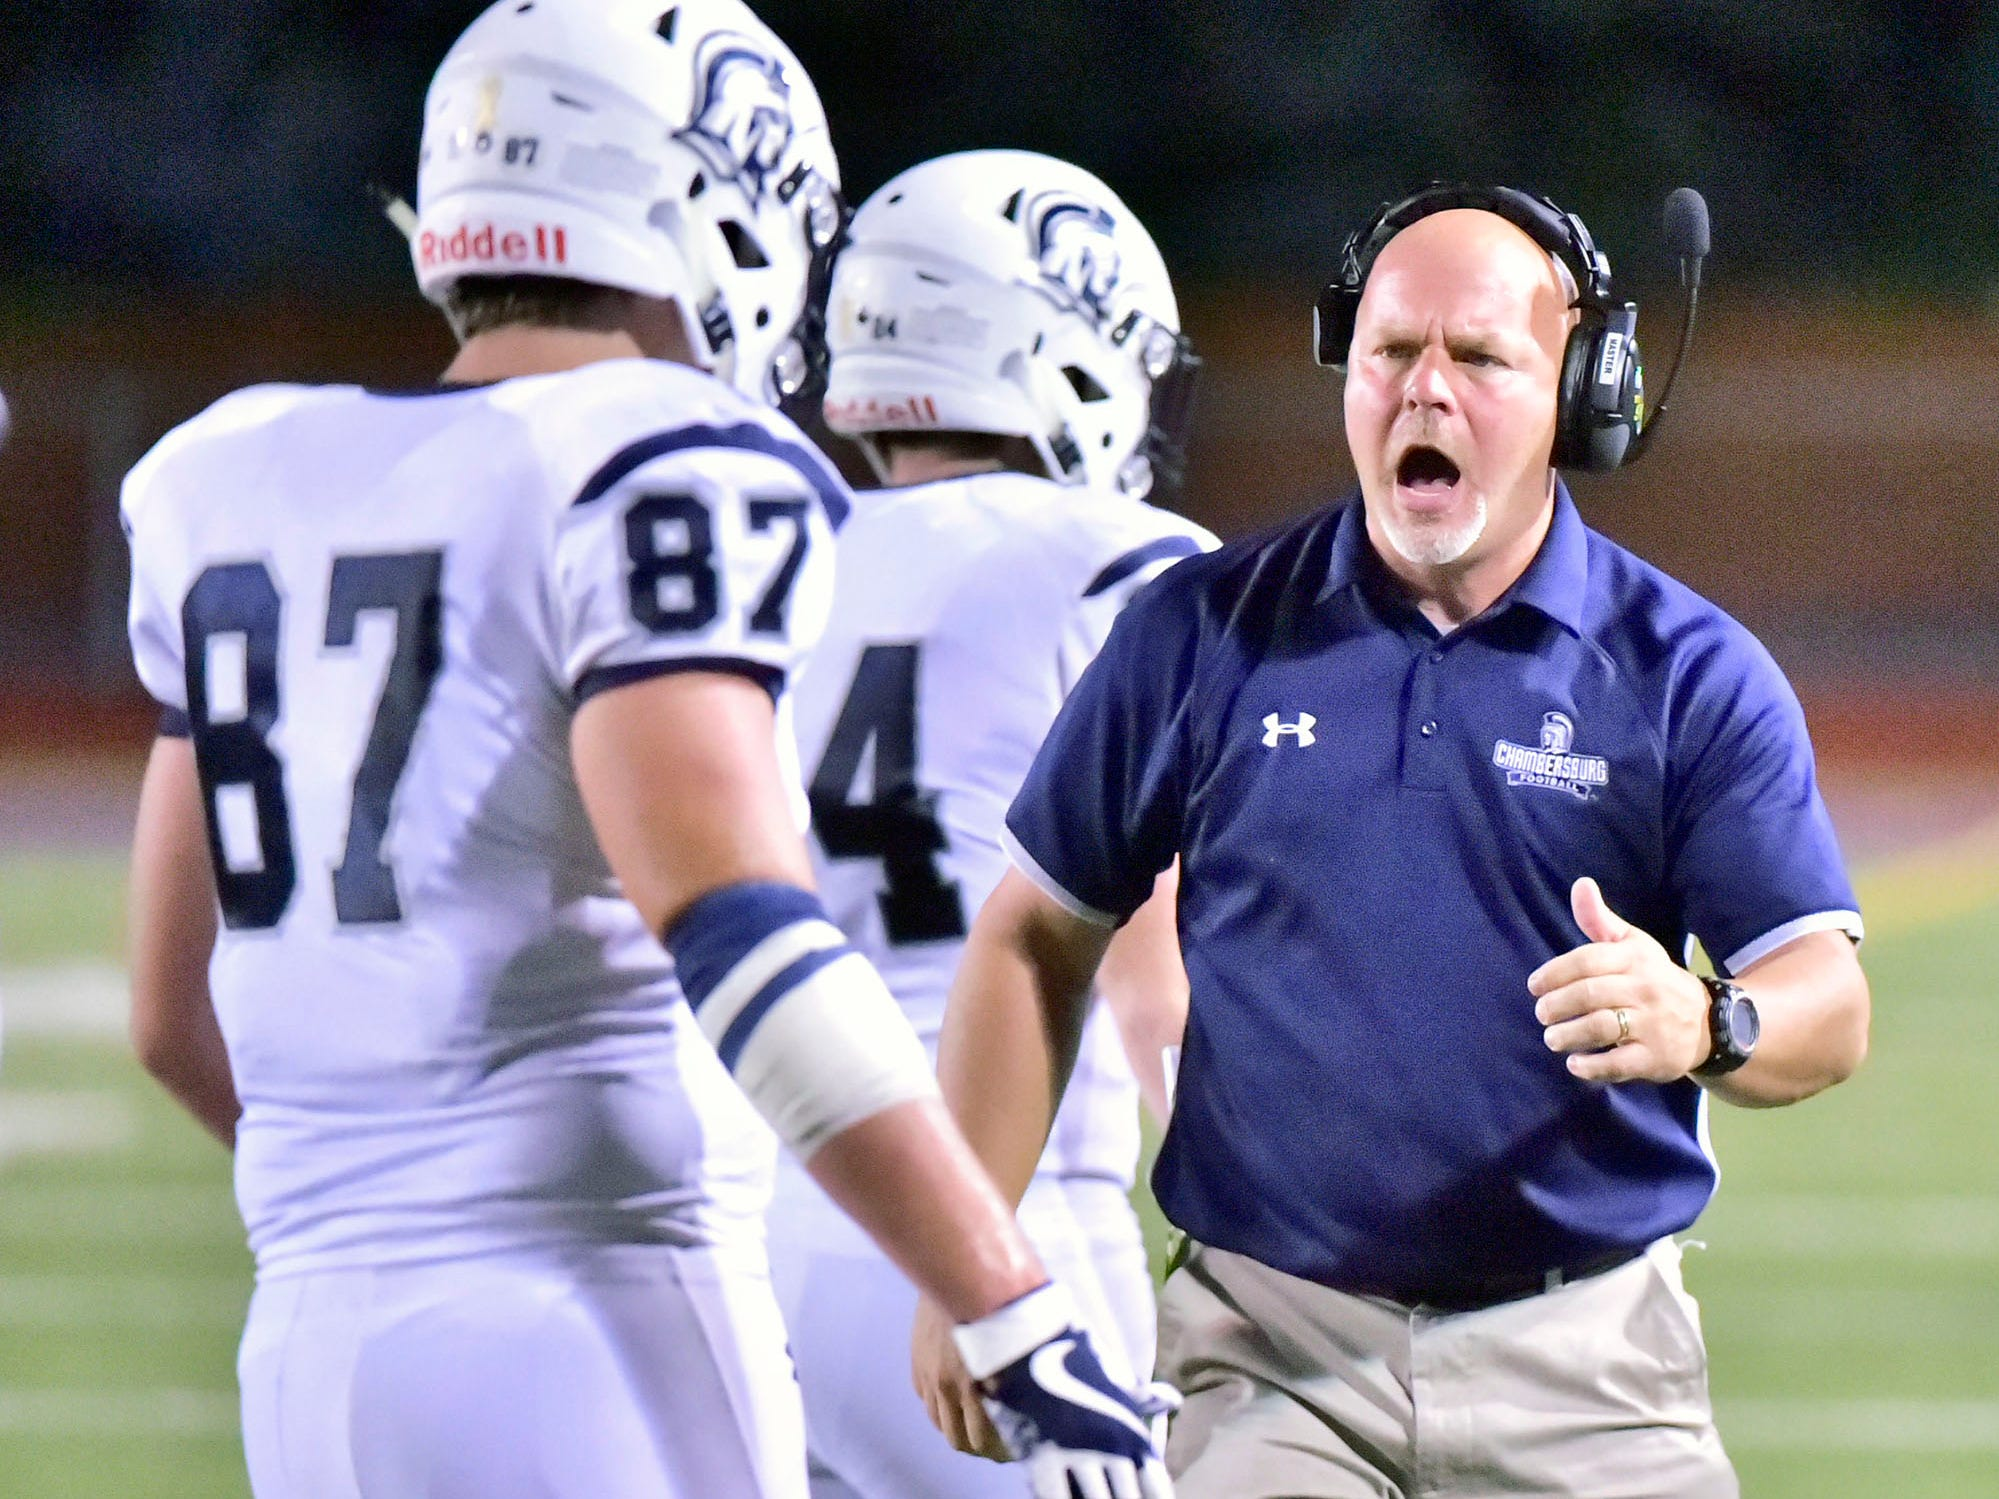 Coach Mark Luther celebrates after a Chambersburg score. Chambersburg defeated Altoona 48-28 in PIAA football to move to 4-0 on Friday, Sept. 14, 2018.